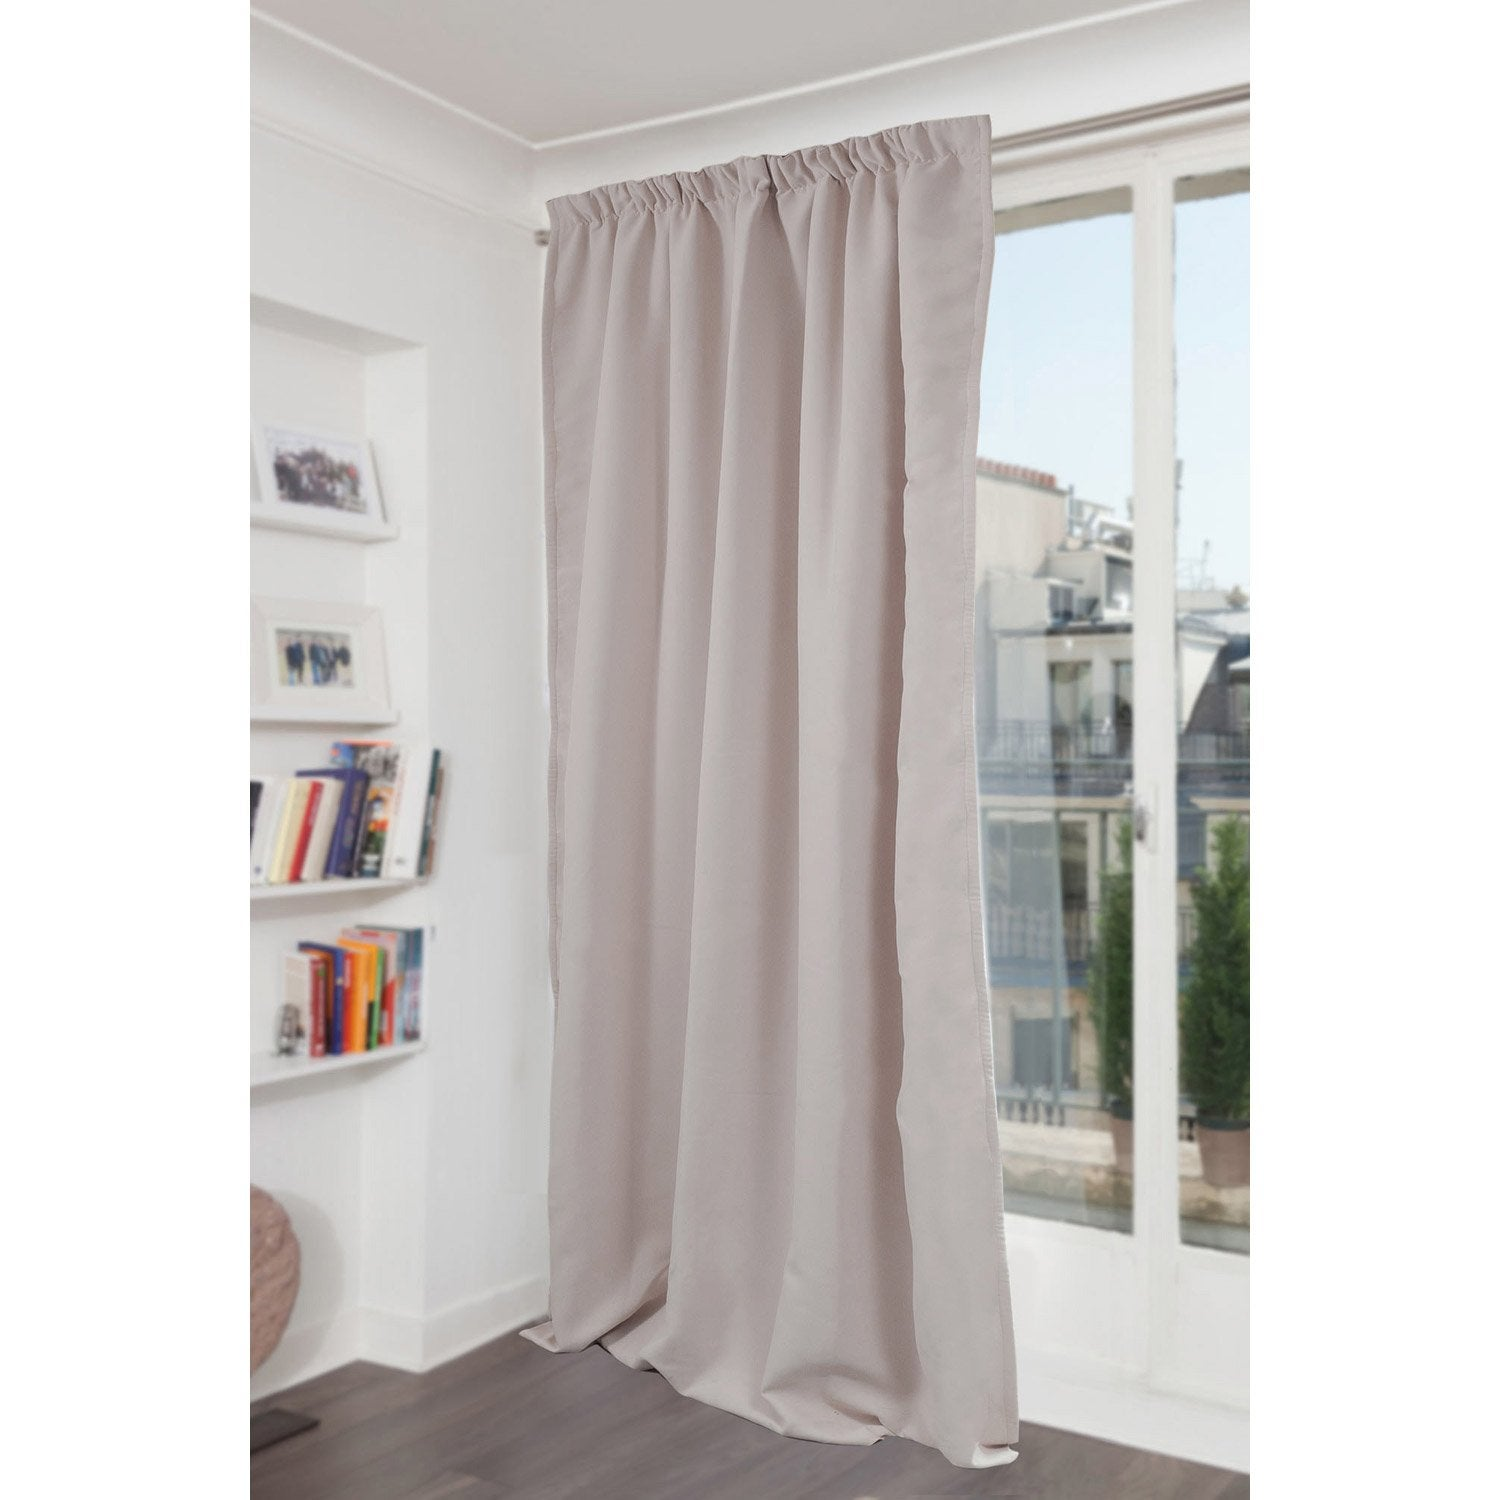 rideau occultant phonique phonique gris clair l 145 x h 260 cm leroy merlin